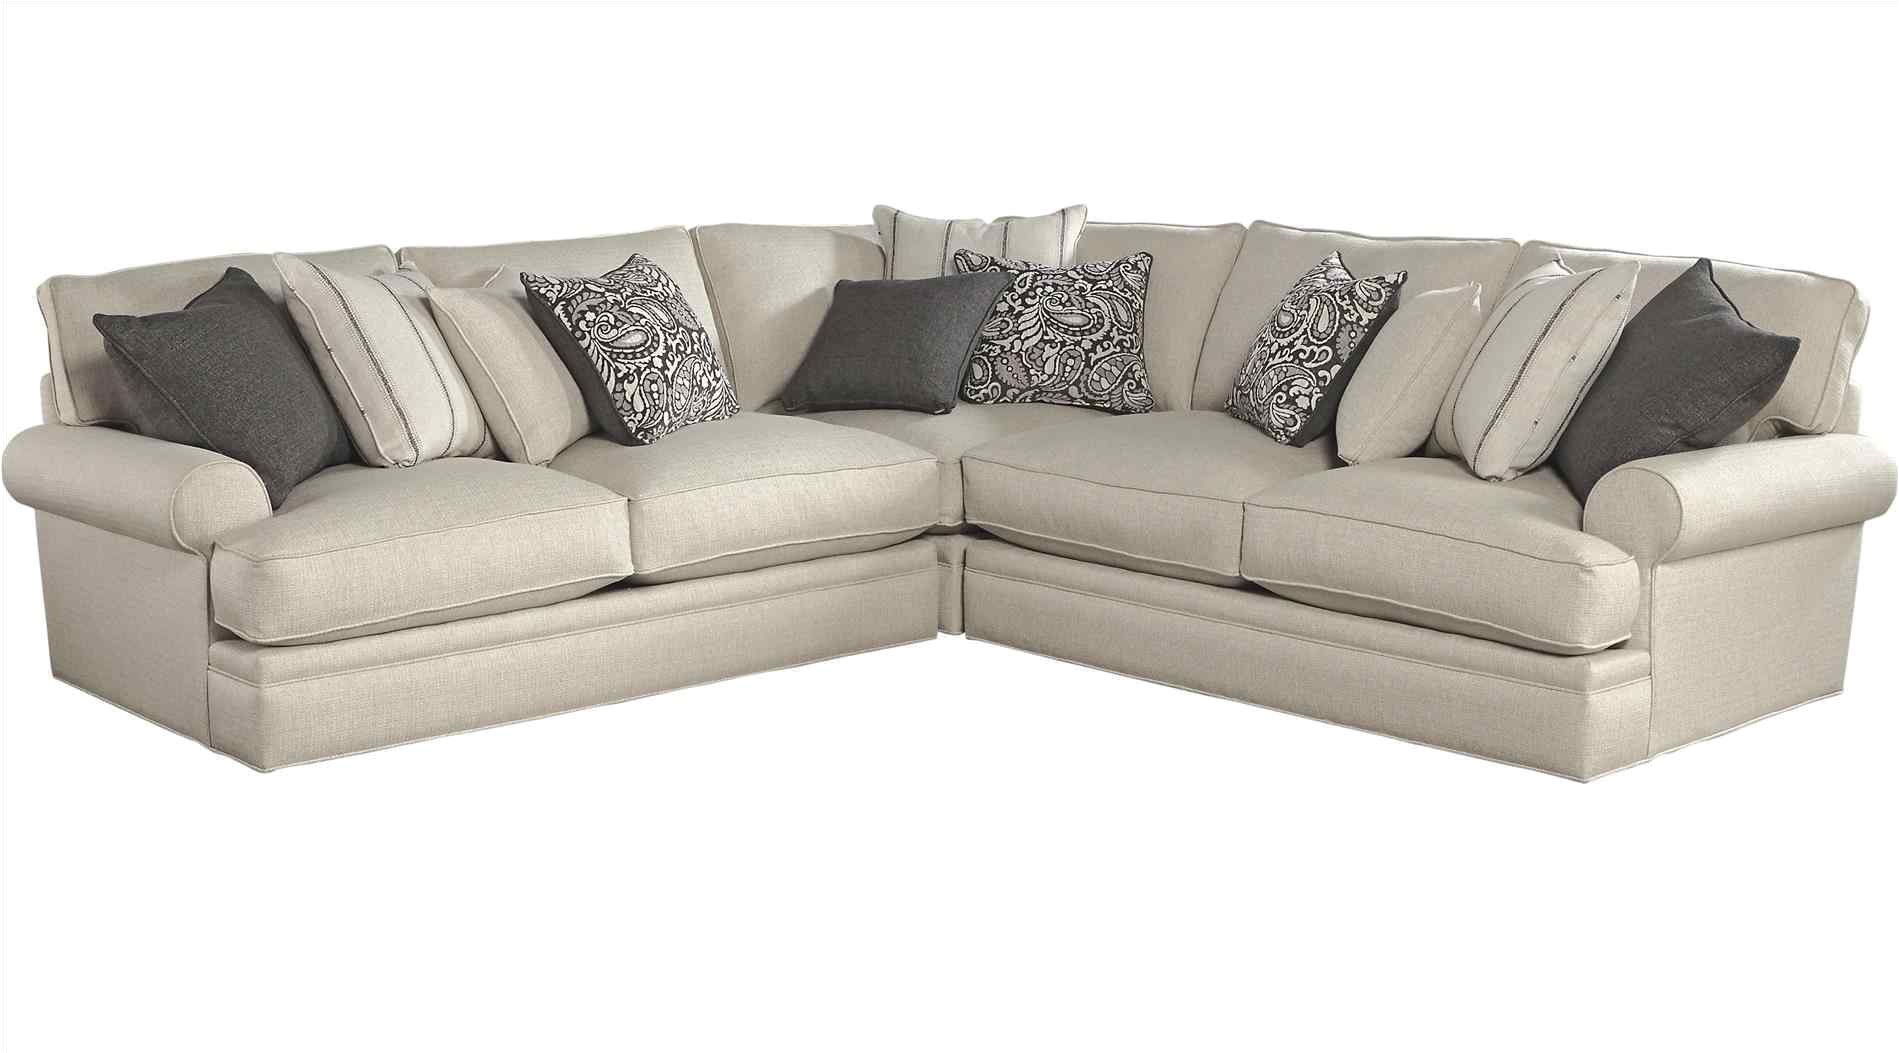 cindy crawford furniture replacement slipcovers